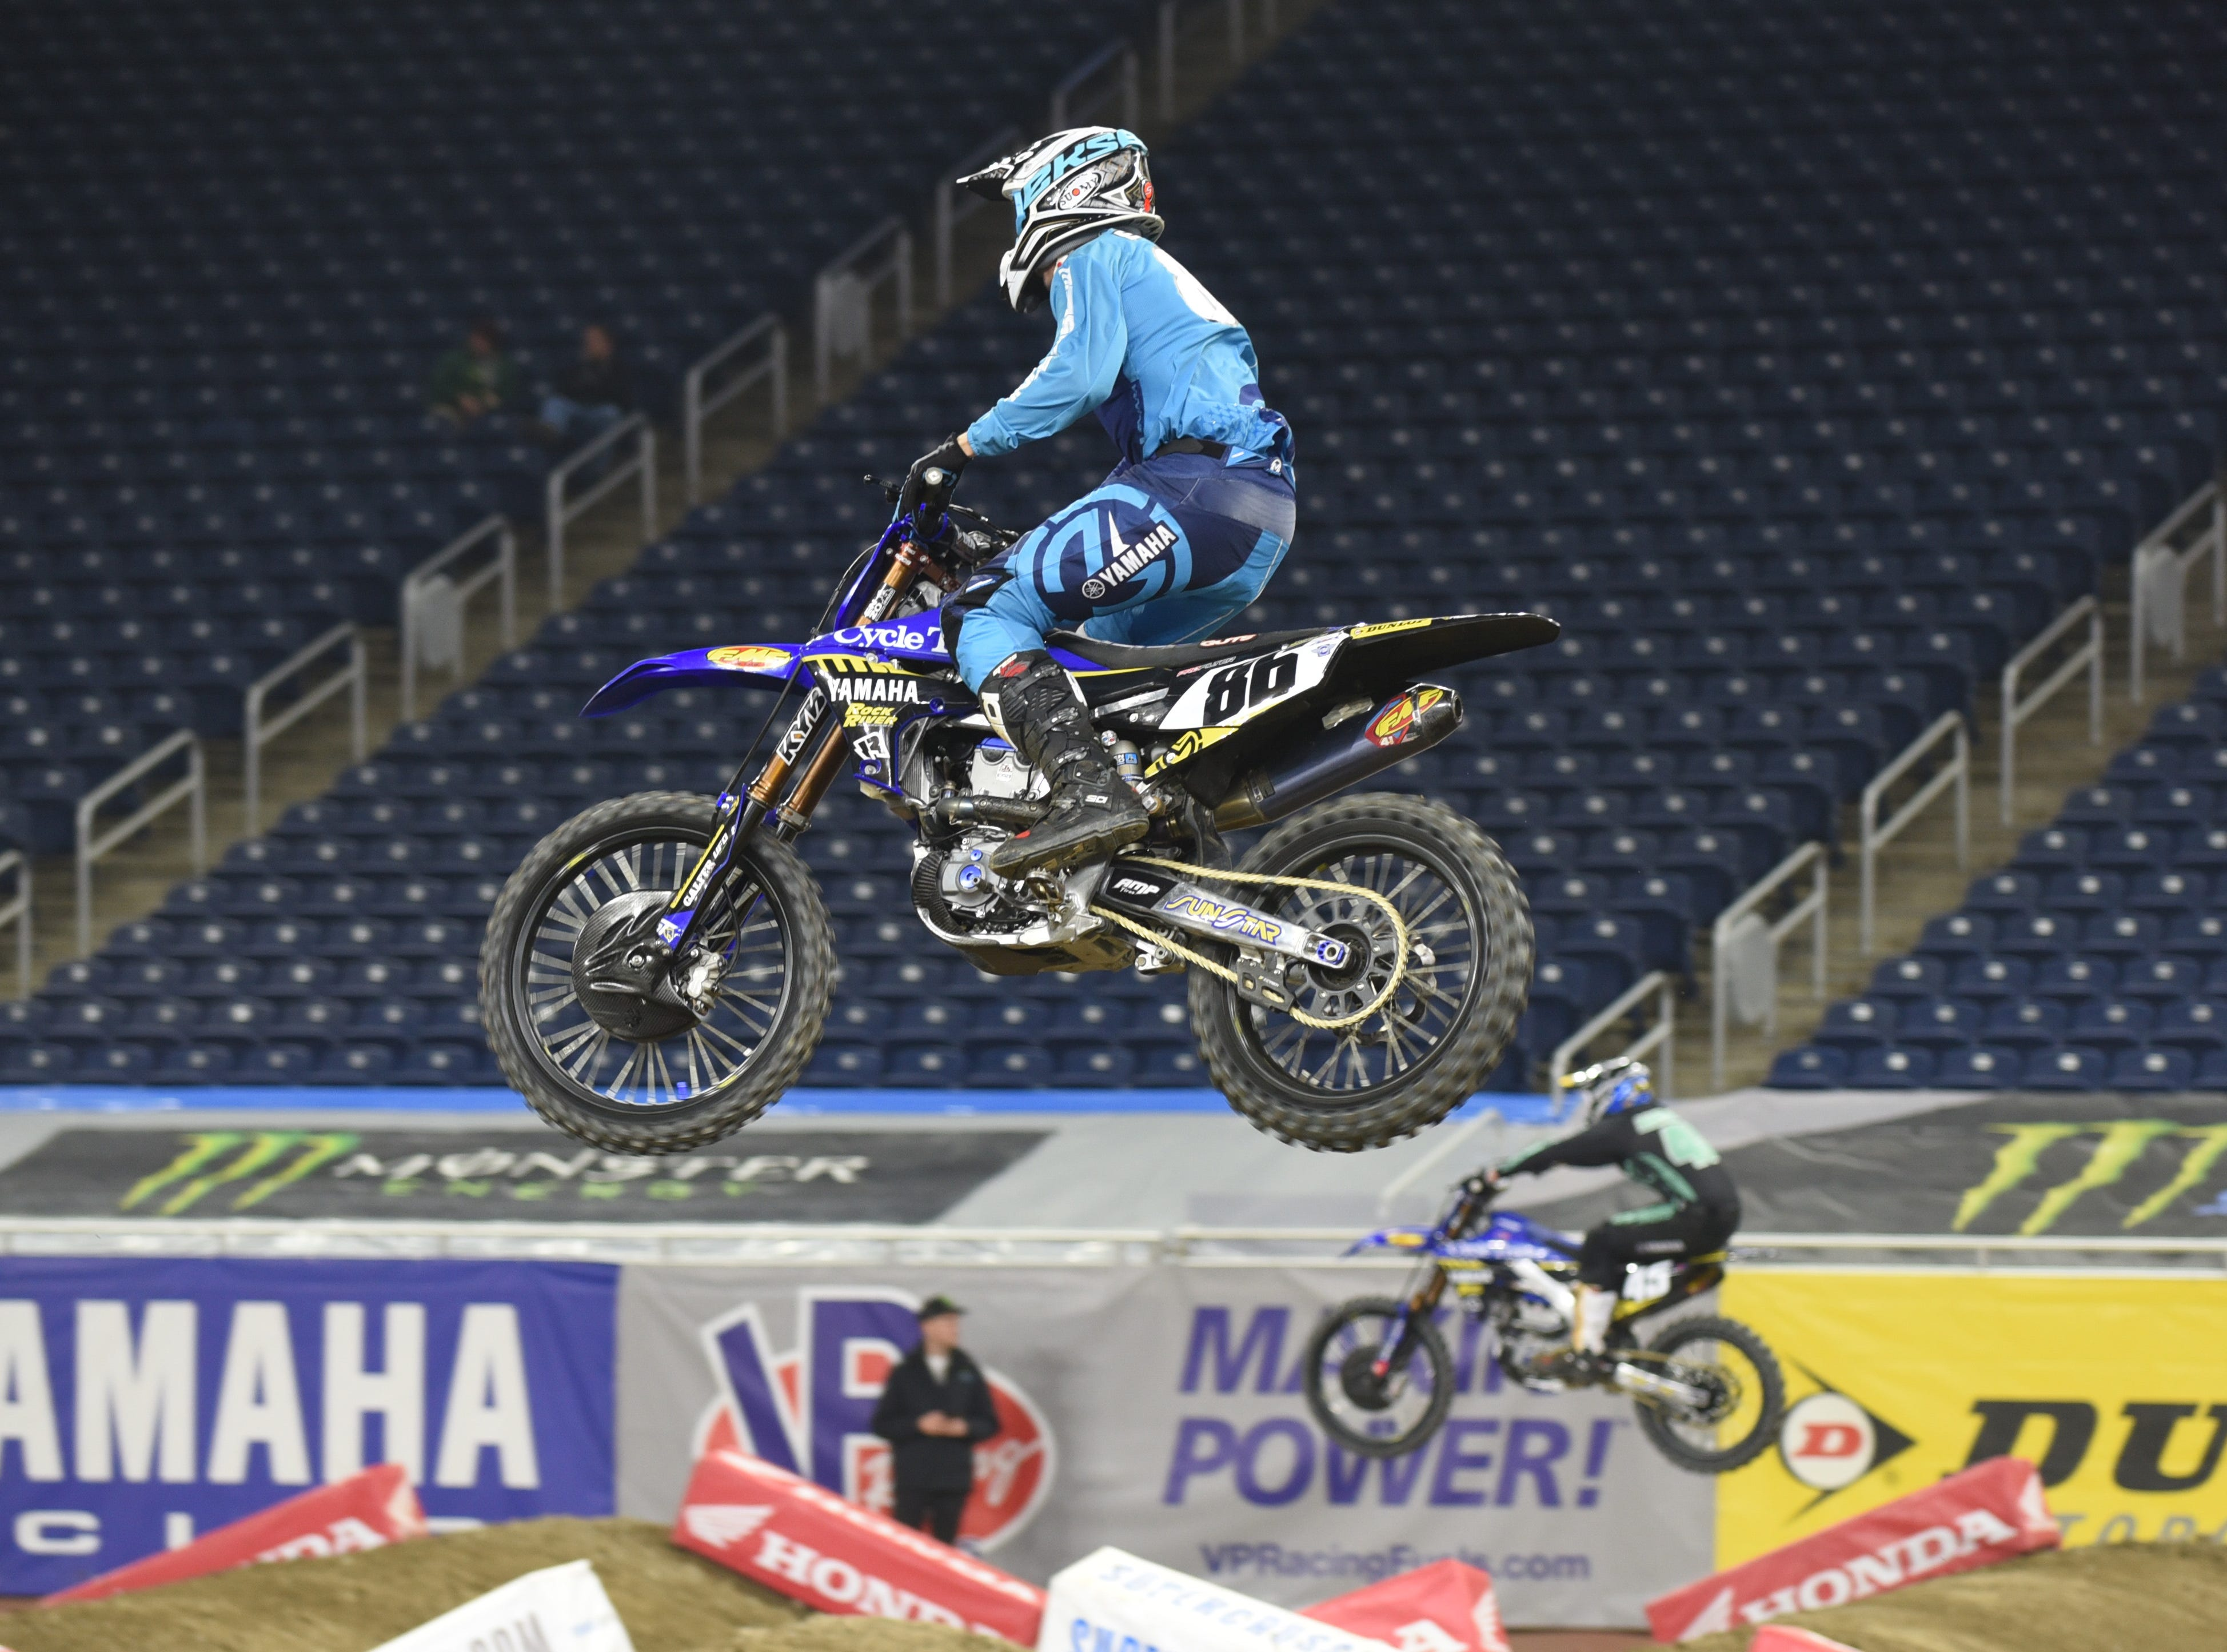 Top Supercross rider Ryan Breece (86) leaps by fellow riders during a practice.